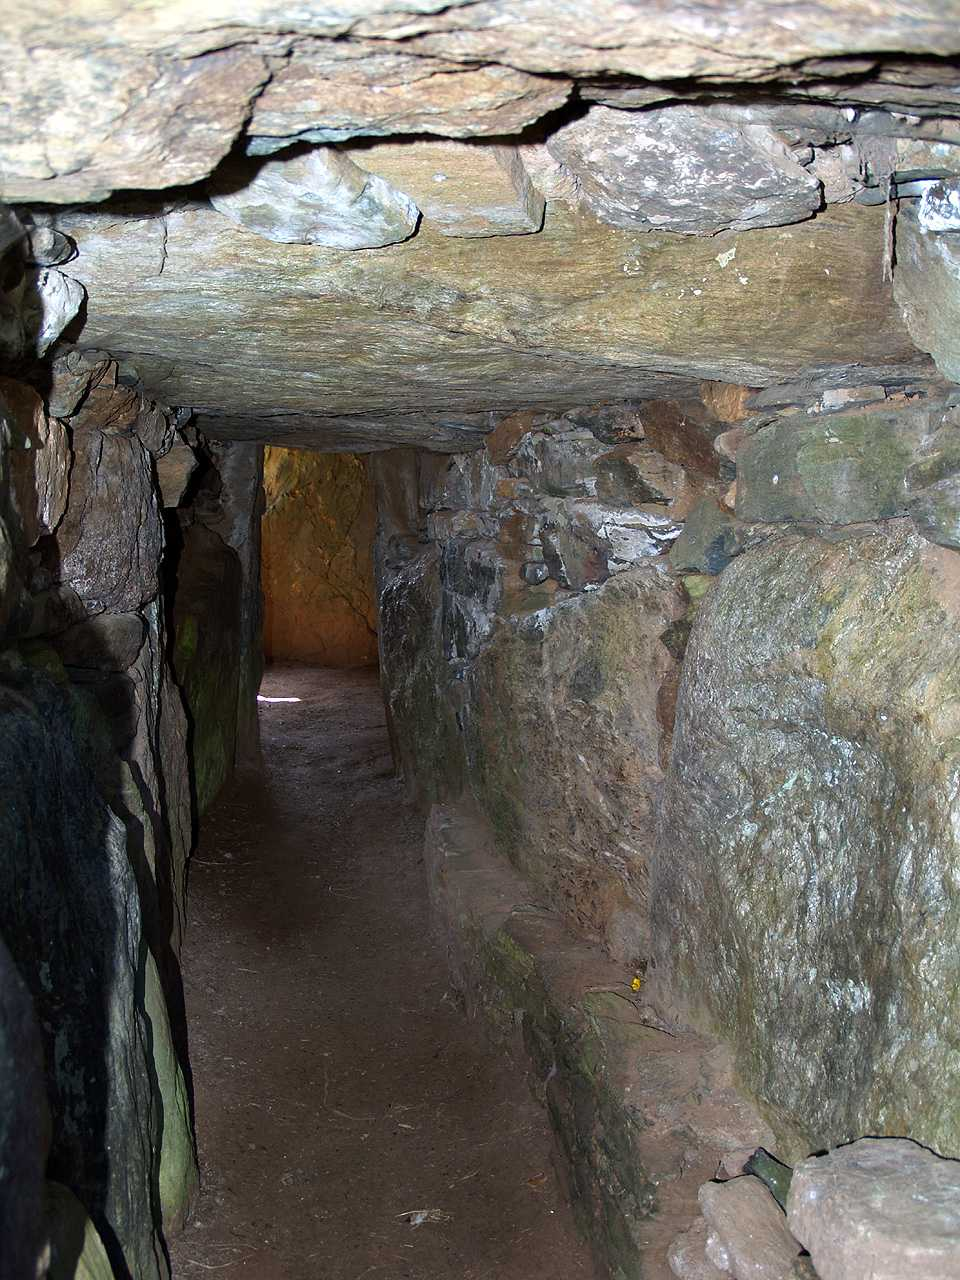 Anglesey, Llanddaniel, Bryn Celli Ddu, Internal Entrance Hall